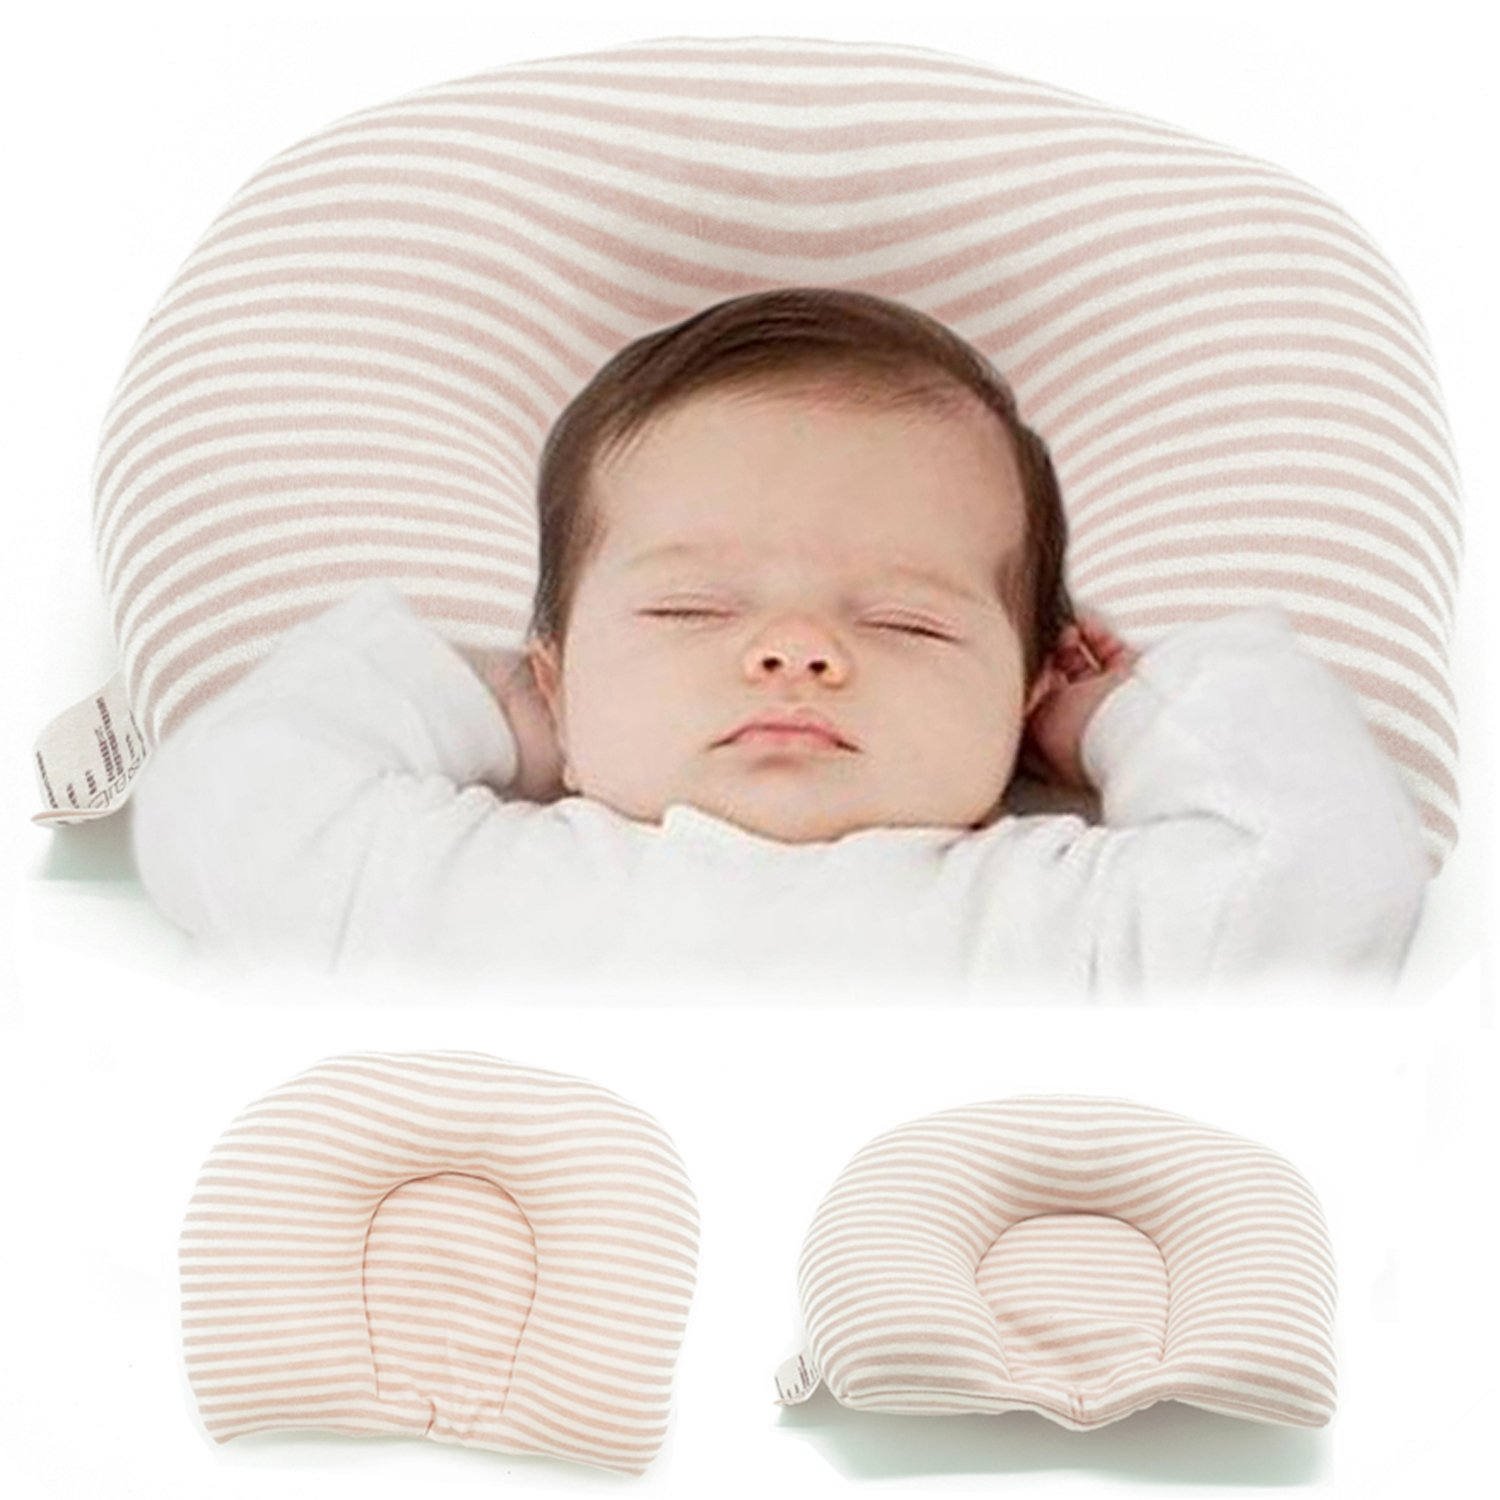 Newborn Baby Pillow Infant Pillow Infant Head Shaping Pillow Newborn Pillow 3 Sizes Baby Pillow 0-2-6-8 Months (2-8 Months Old)